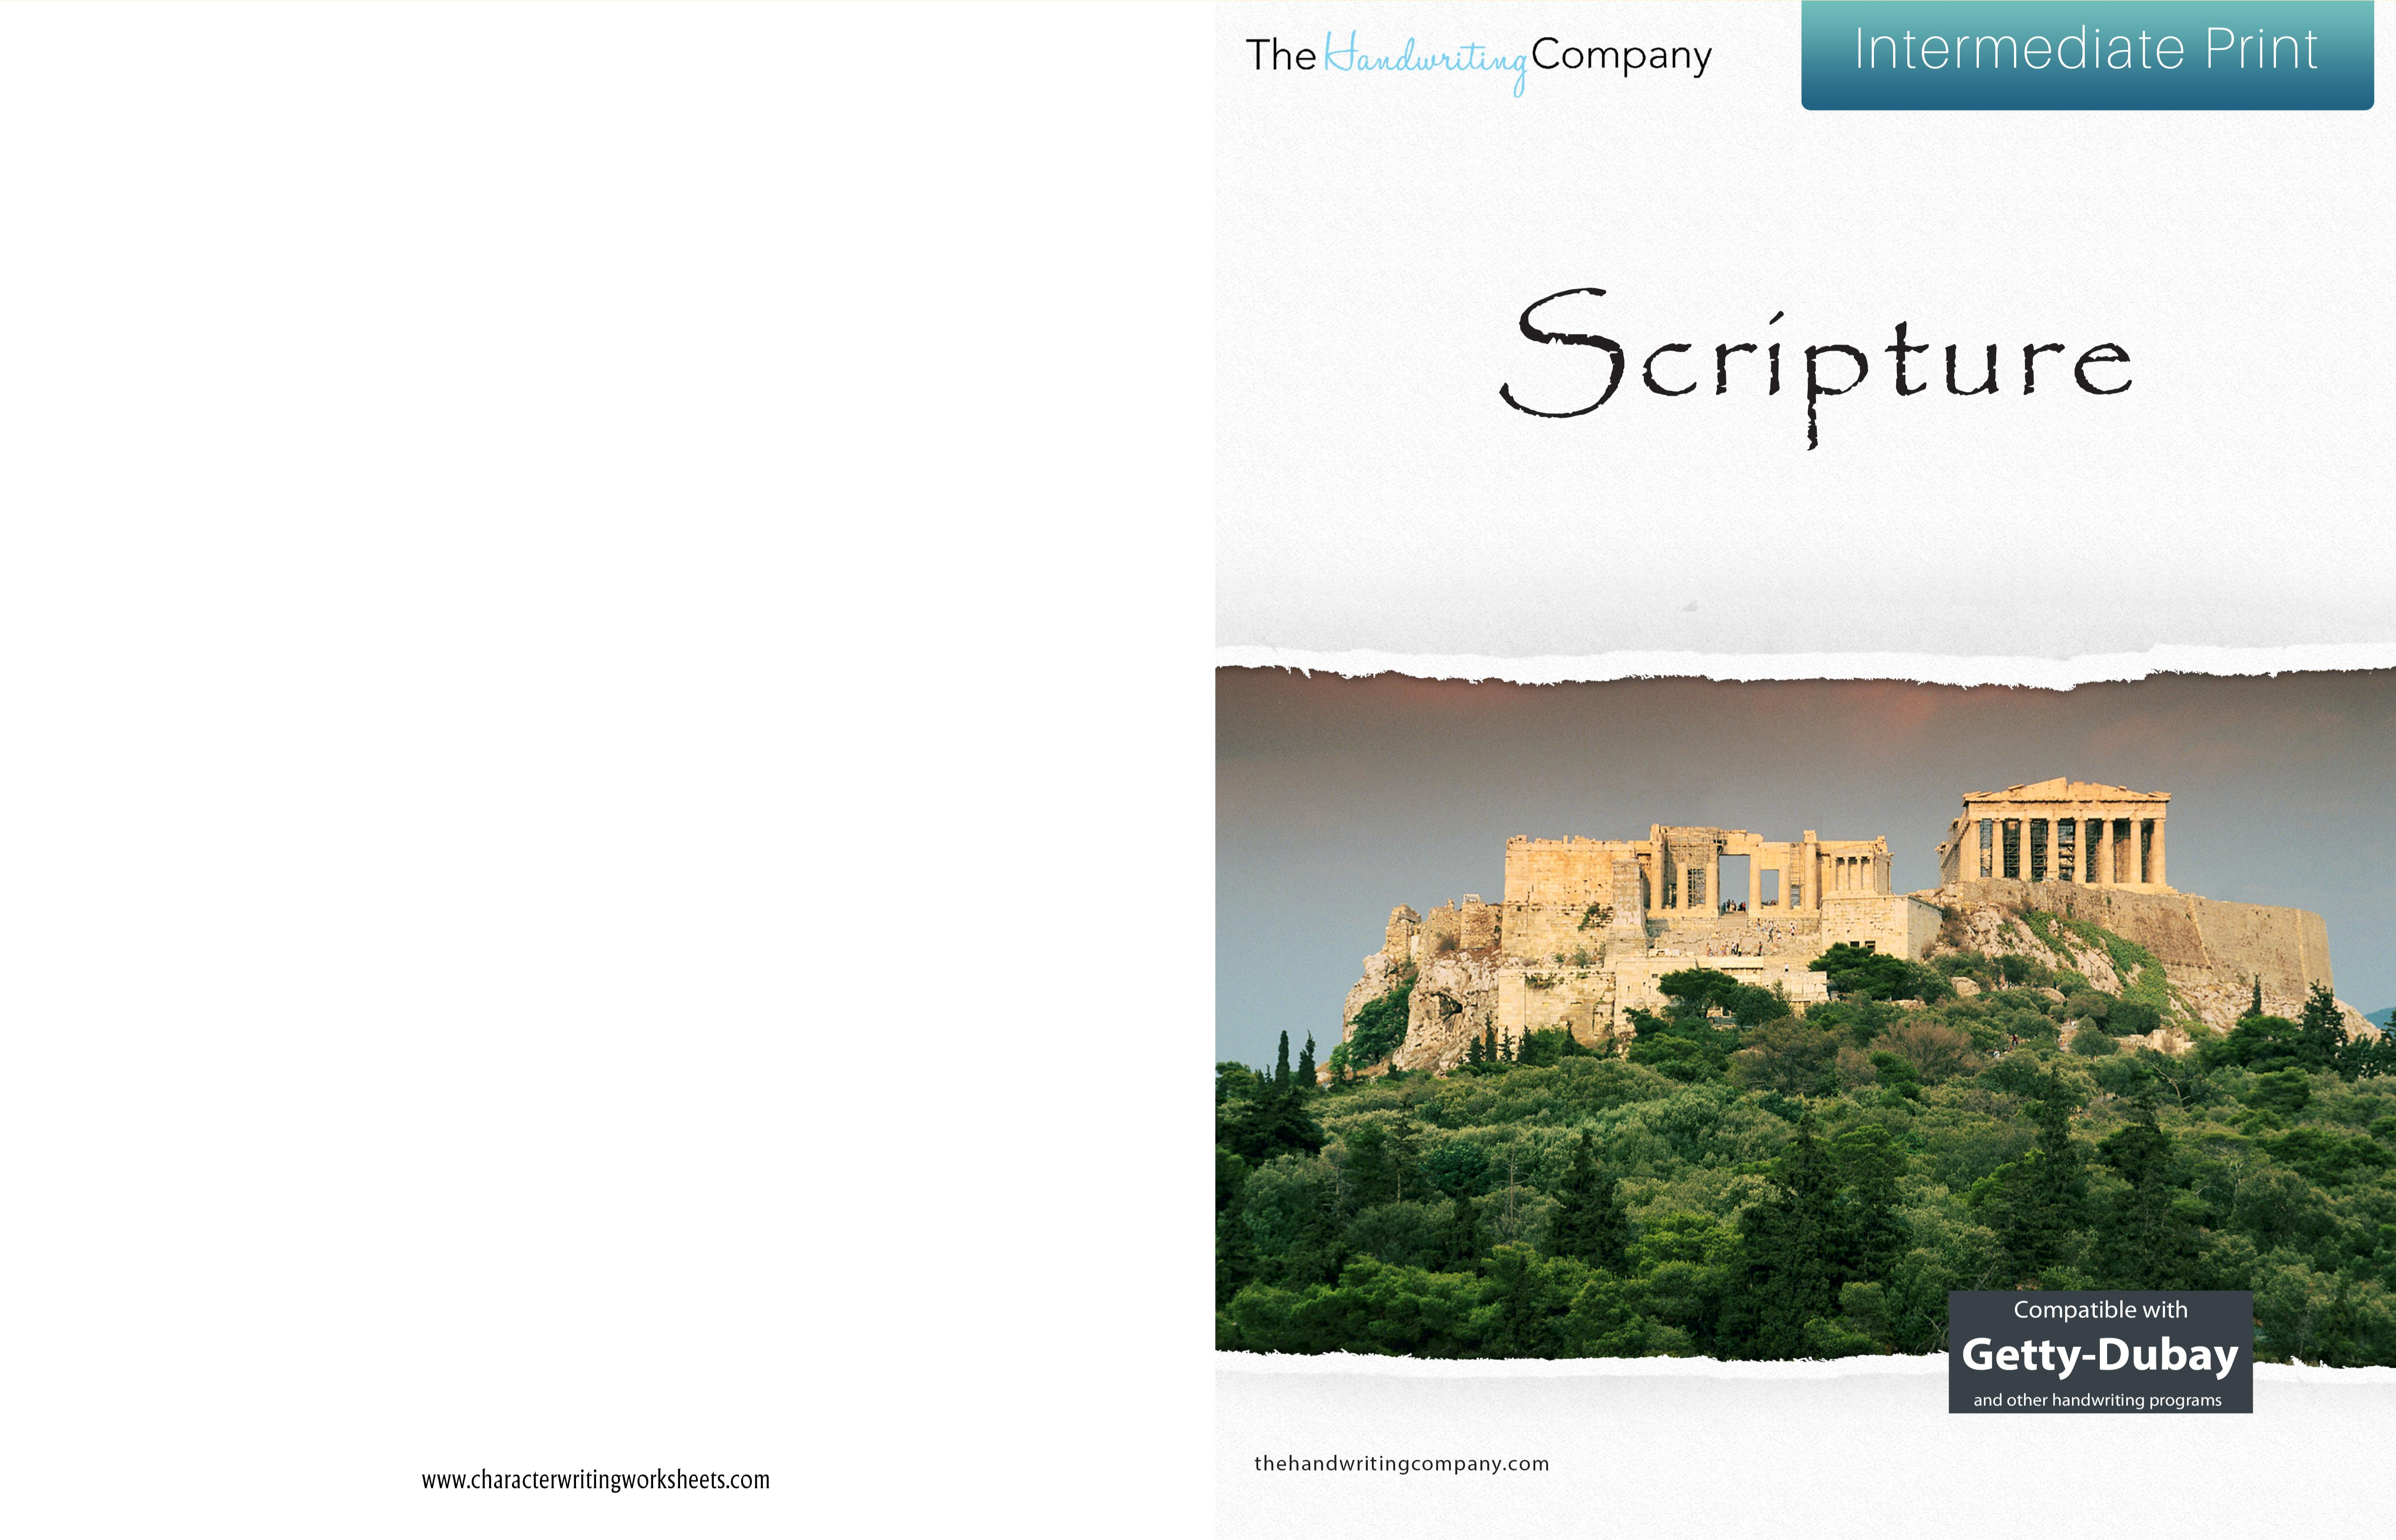 Scripture - GDI - Intermediate Print cover image